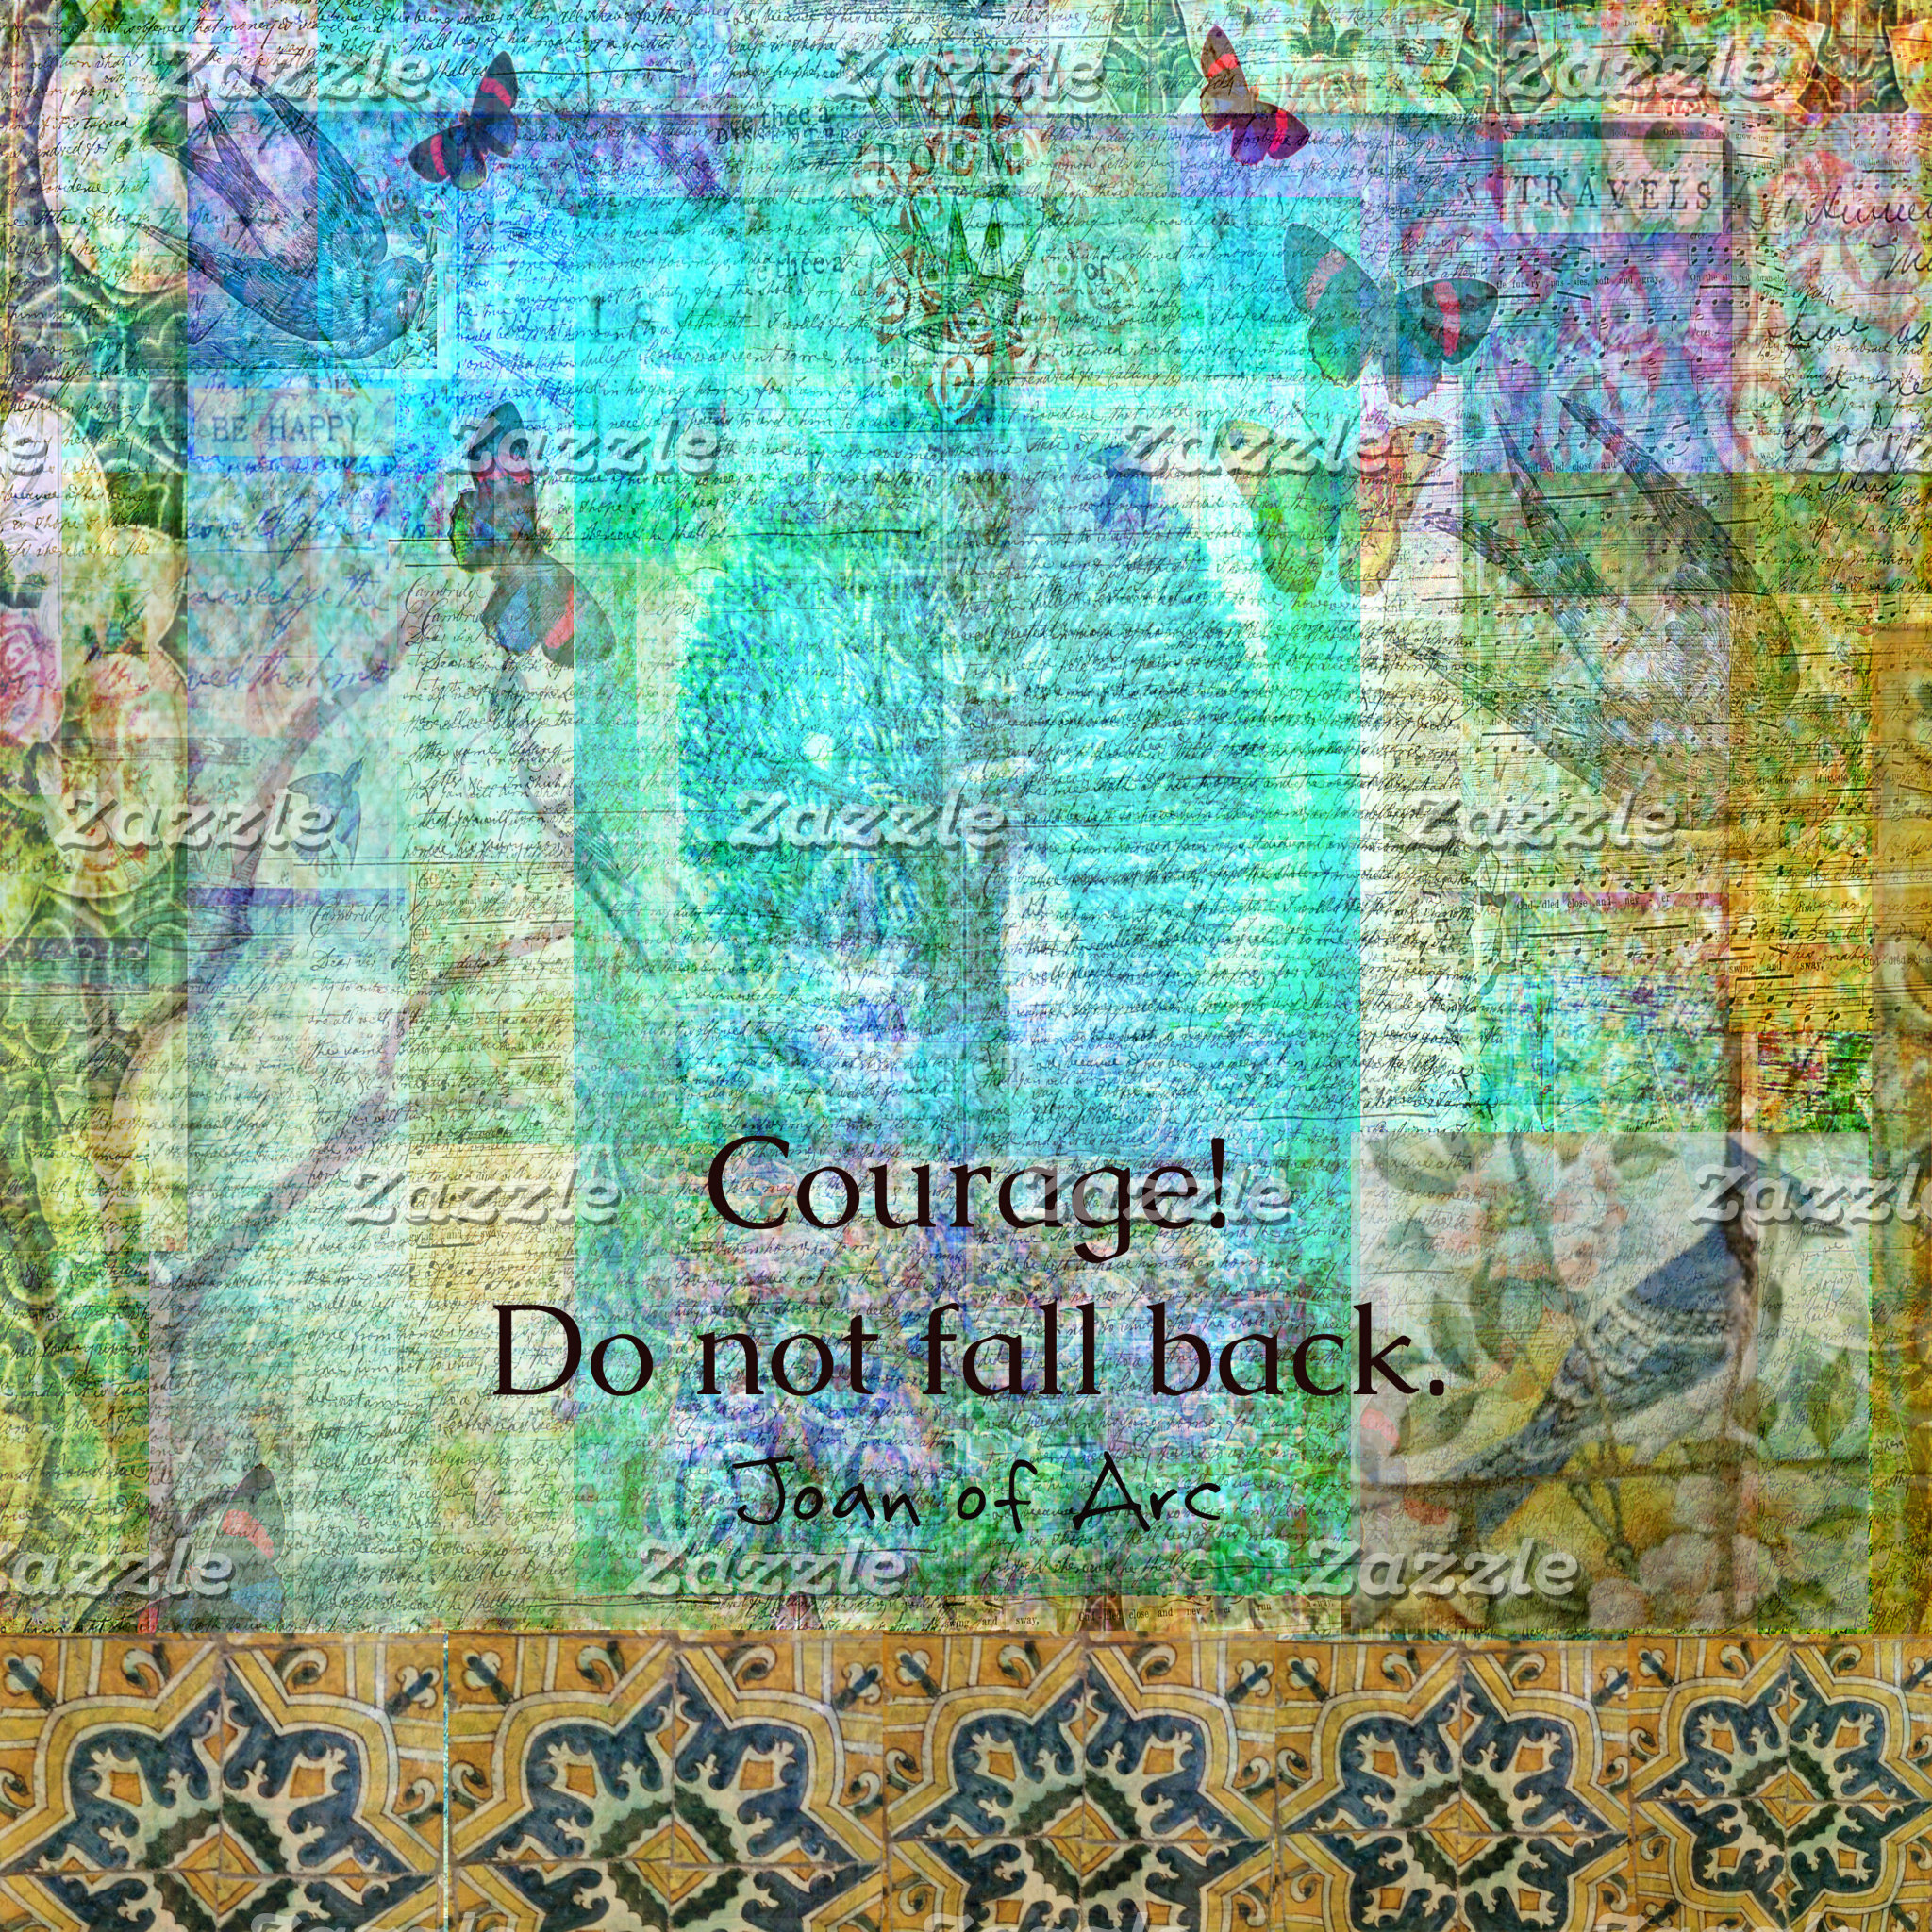 Courage! Do not fall back. Jeanne d'Arc